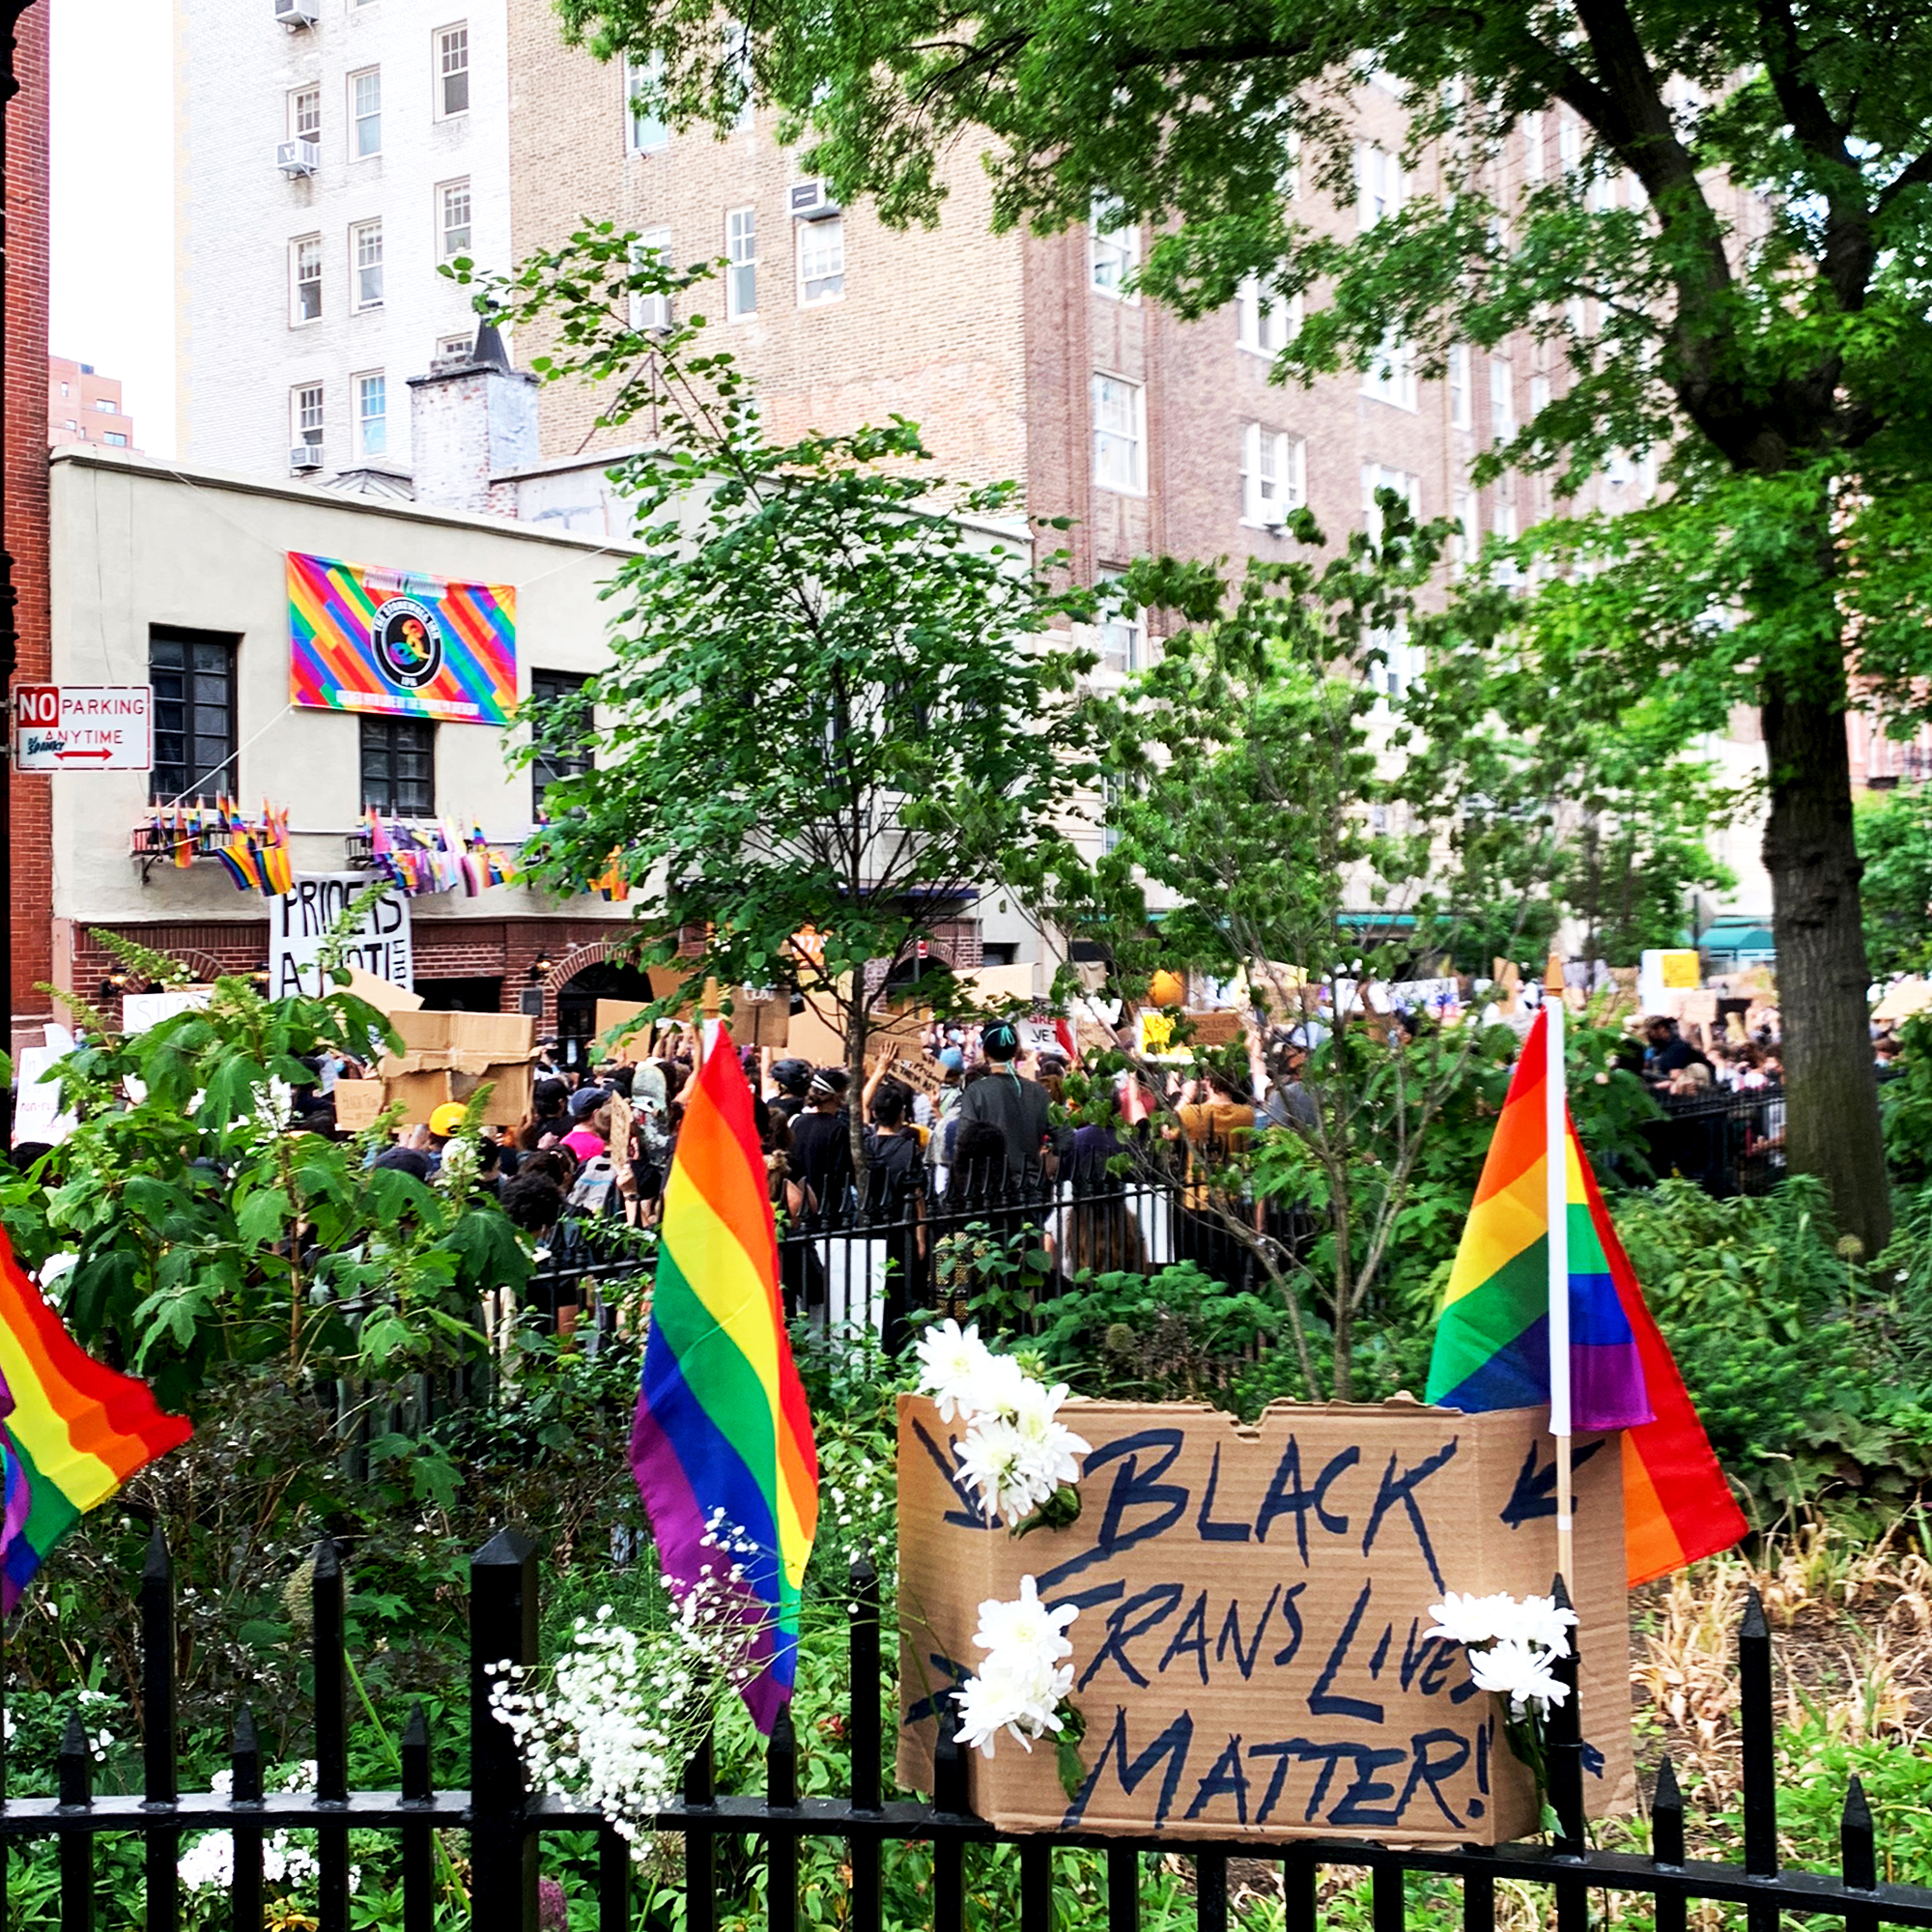 Black Trans Lives Matter protest - Christopher Street NYC, June 2 2020 / photograph by us